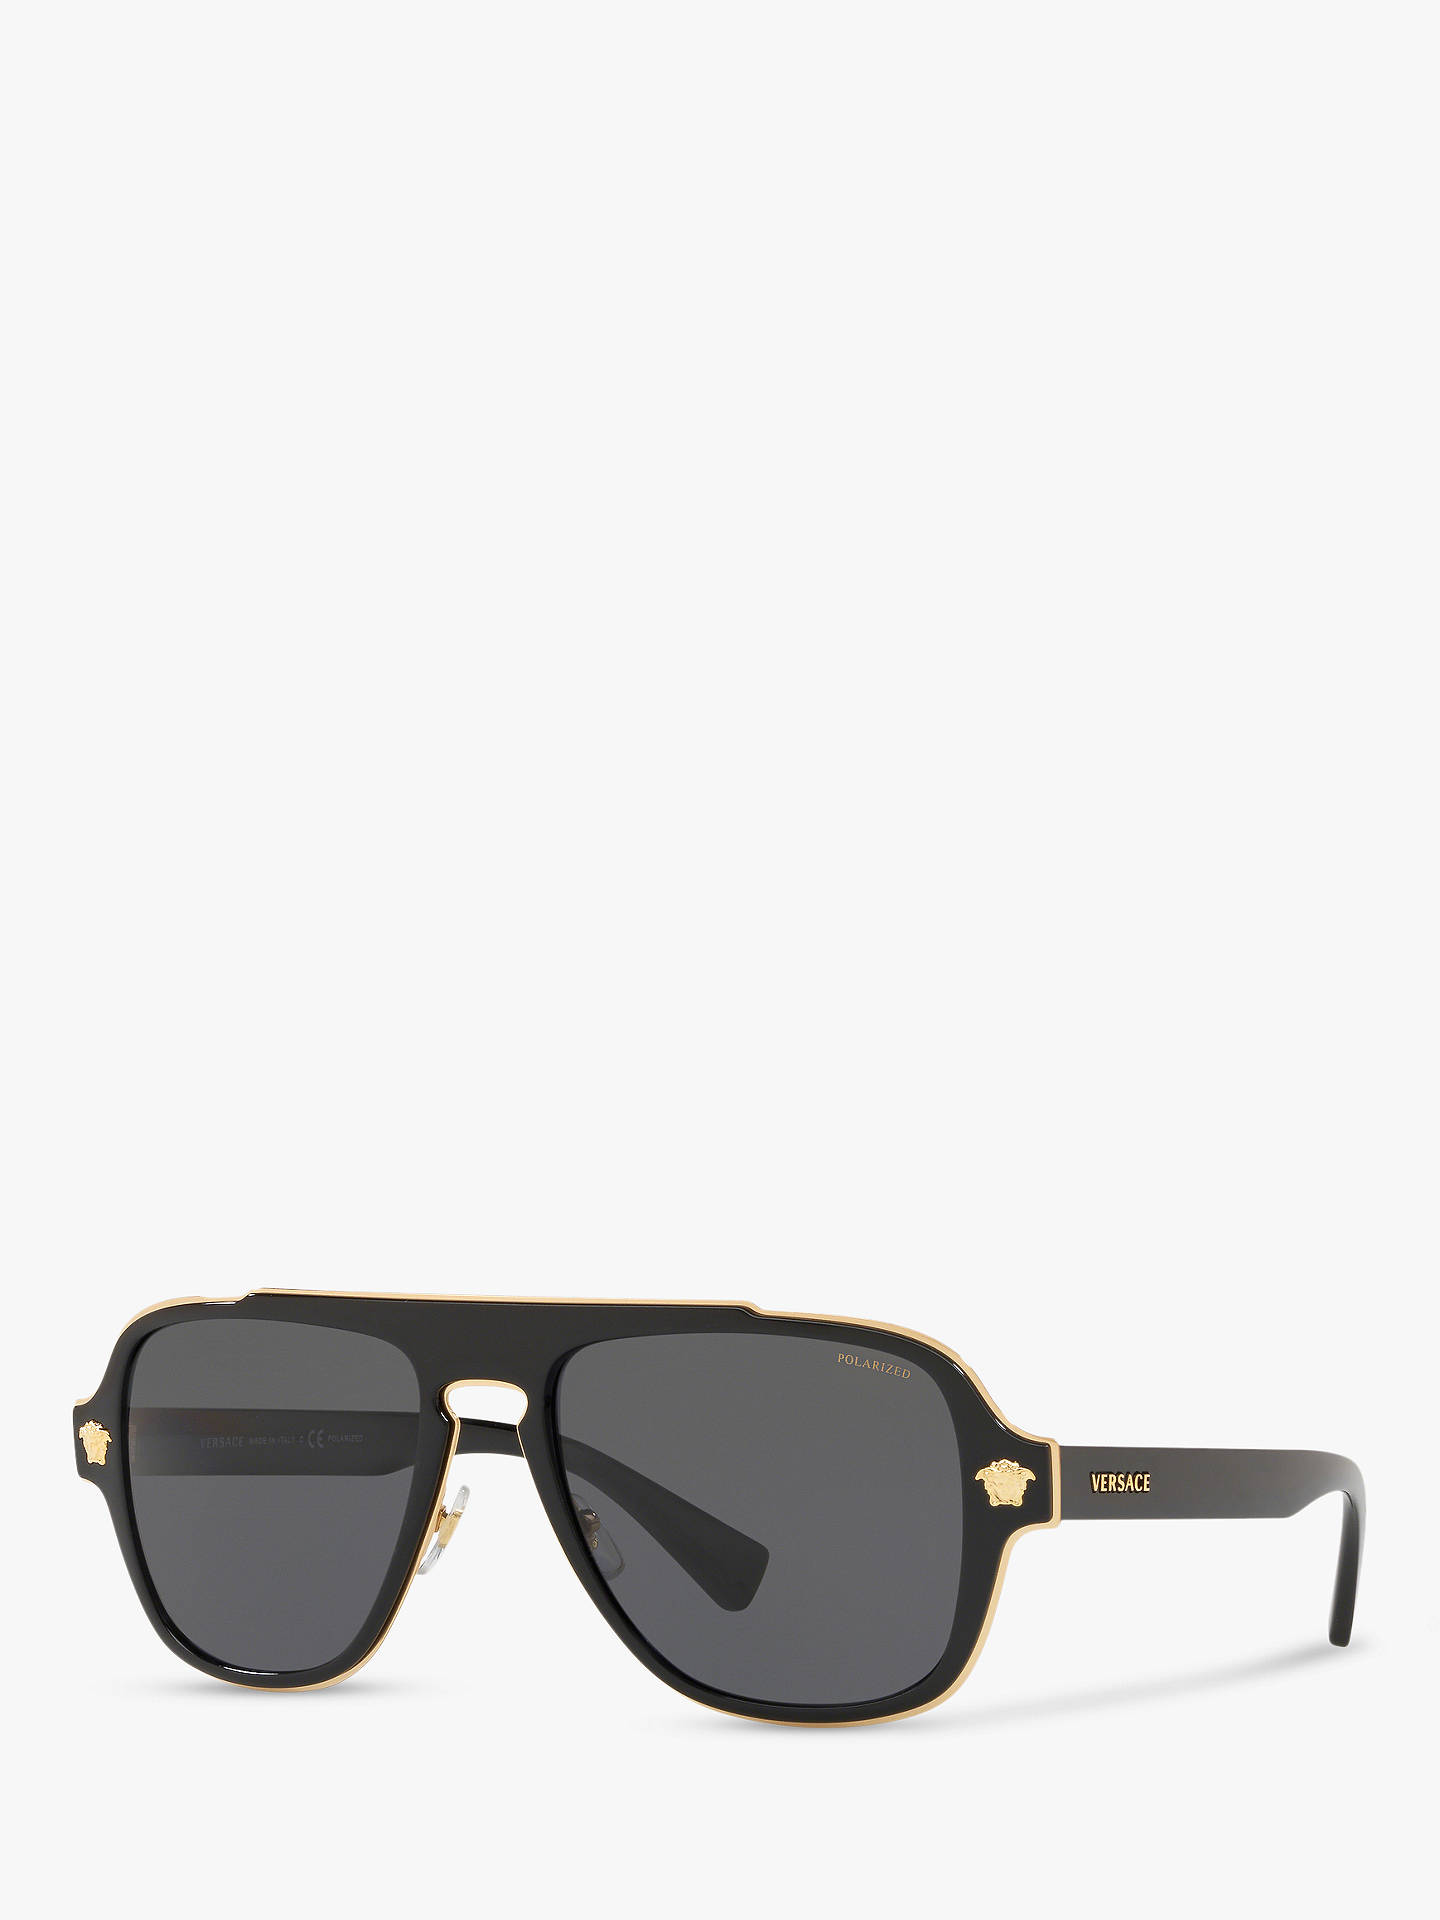 038261f3c8d2 Buy Versace VE2199 Men s Polarised Geometric Sunglasses